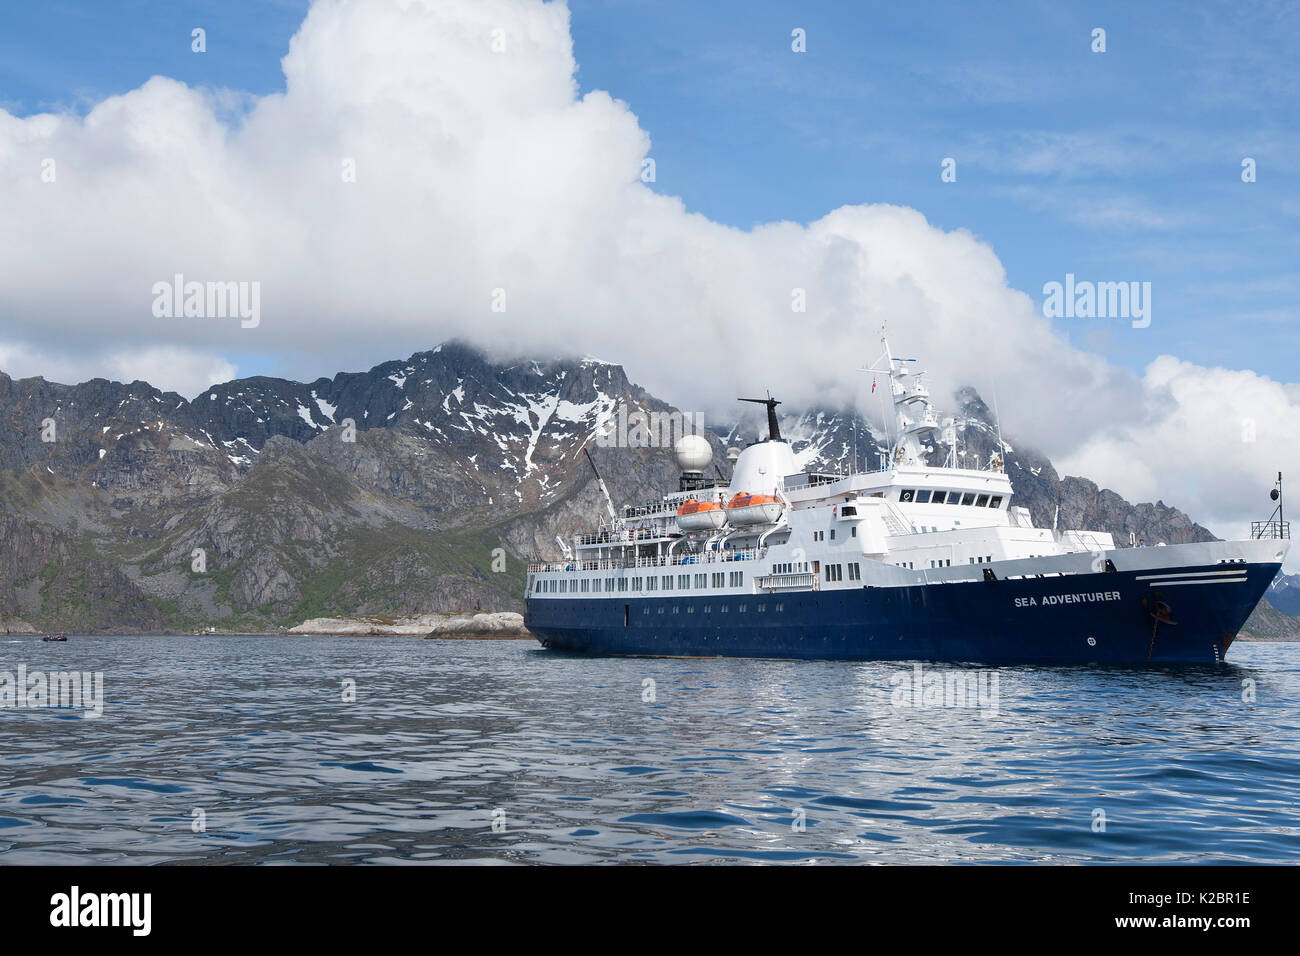 'Sea Adventurer', formerly the 'Clipper Adventurer', at anchor off Henningsvaer, Lofoten Islands, Norway, June 2015. All non-editorial uses must be cleared individually. - Stock Image